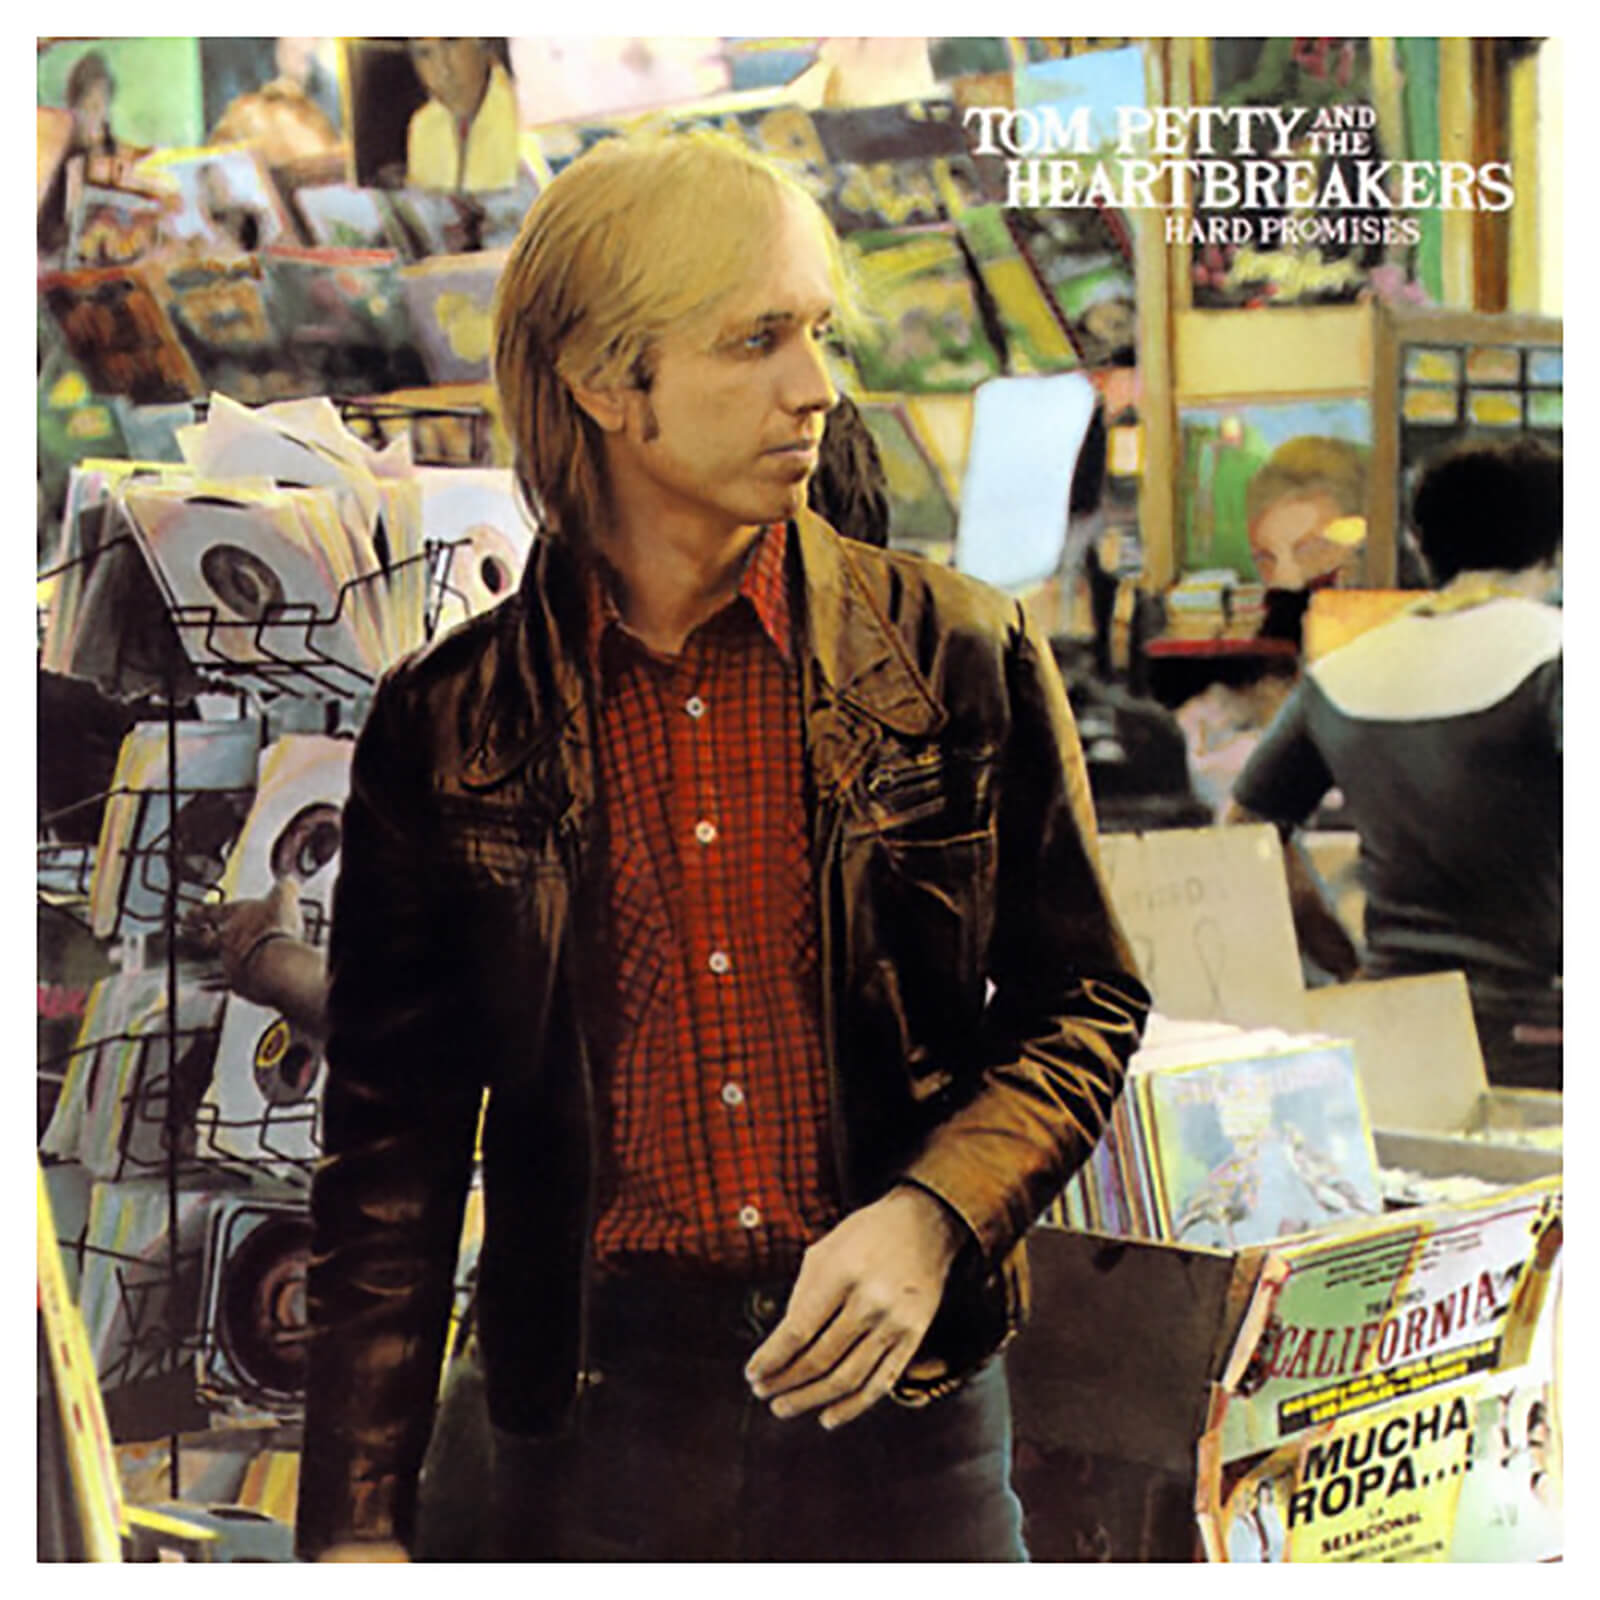 Tom Petty & The Heartbreakers - Hard Promises - Vinyl